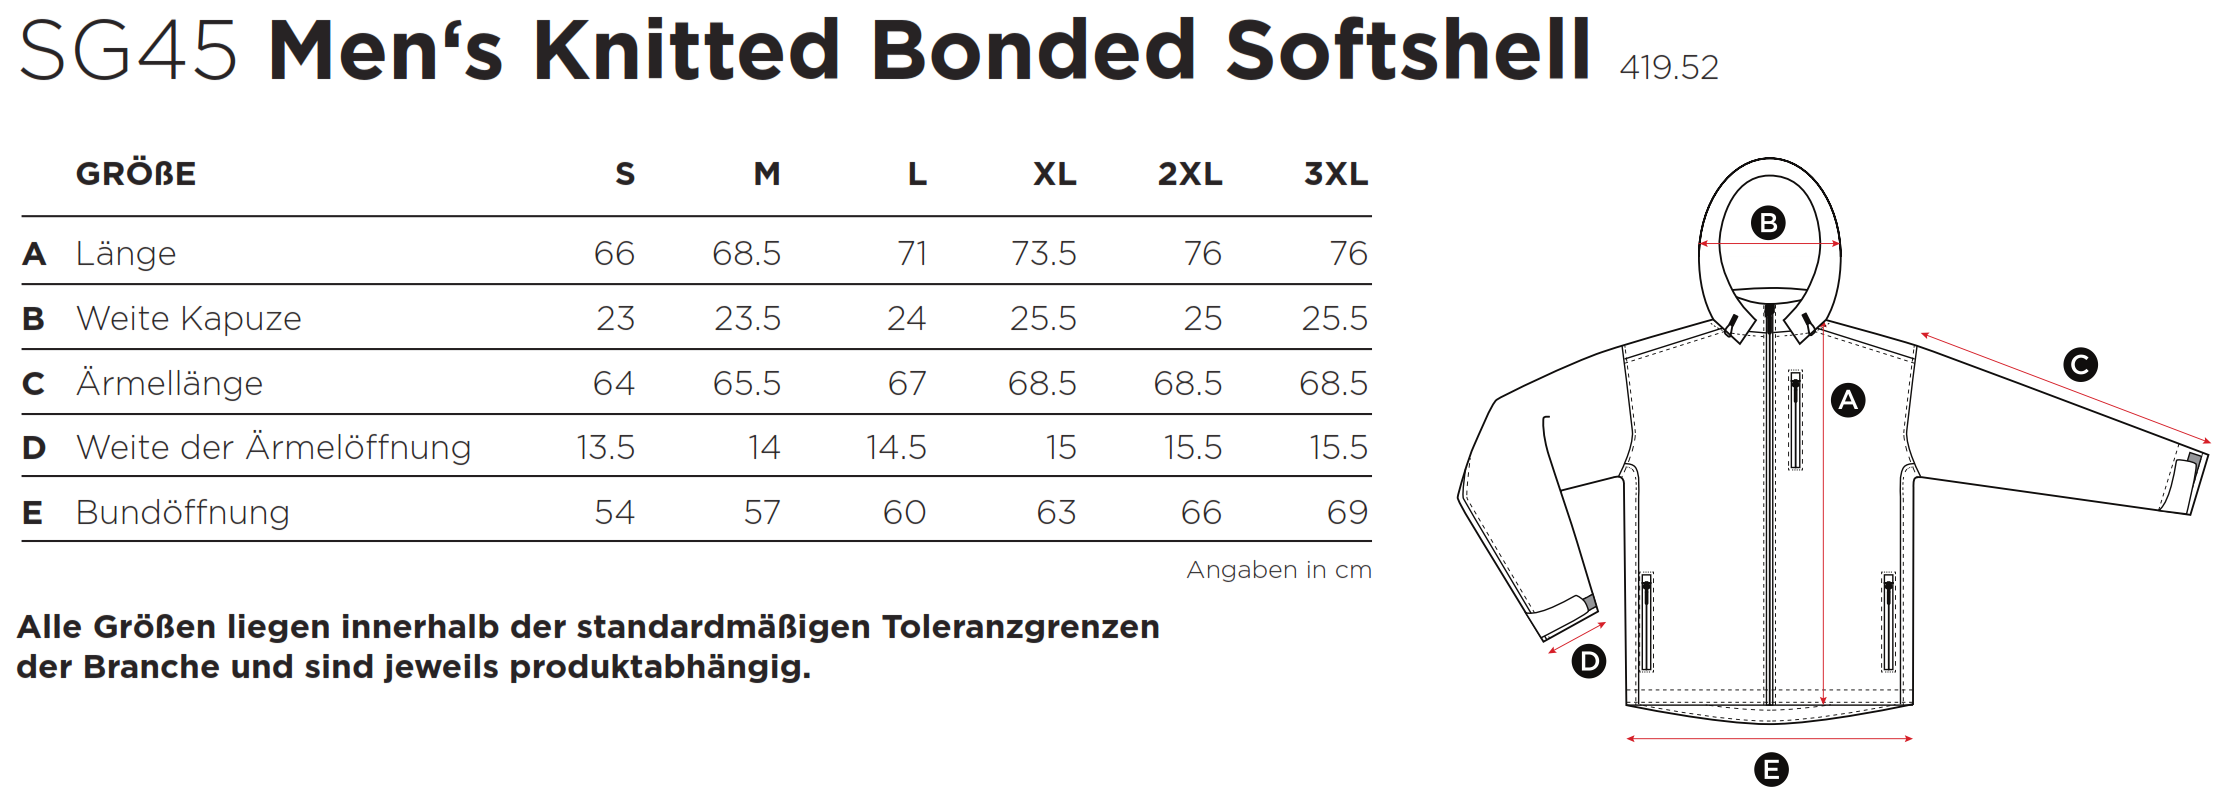 SG: Knitted Bonded Softshell SG45